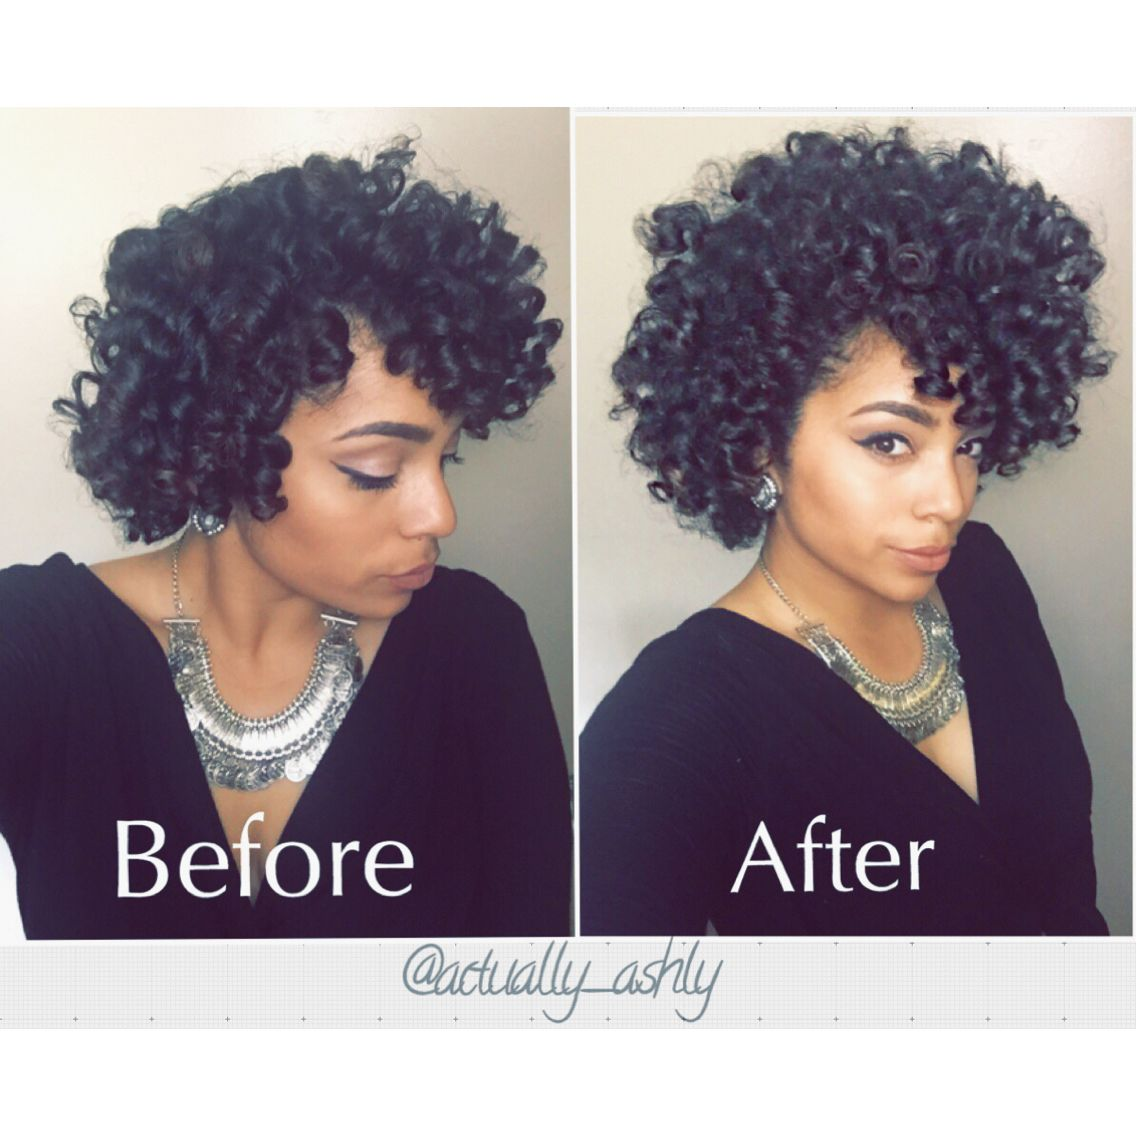 Perm Rod Set On Natural Hair This Is To Show You Before And After Fluffing In A Perm Rod Set If Yo Medium Natural Hair Styles Hair Styles Natural Hair Styles